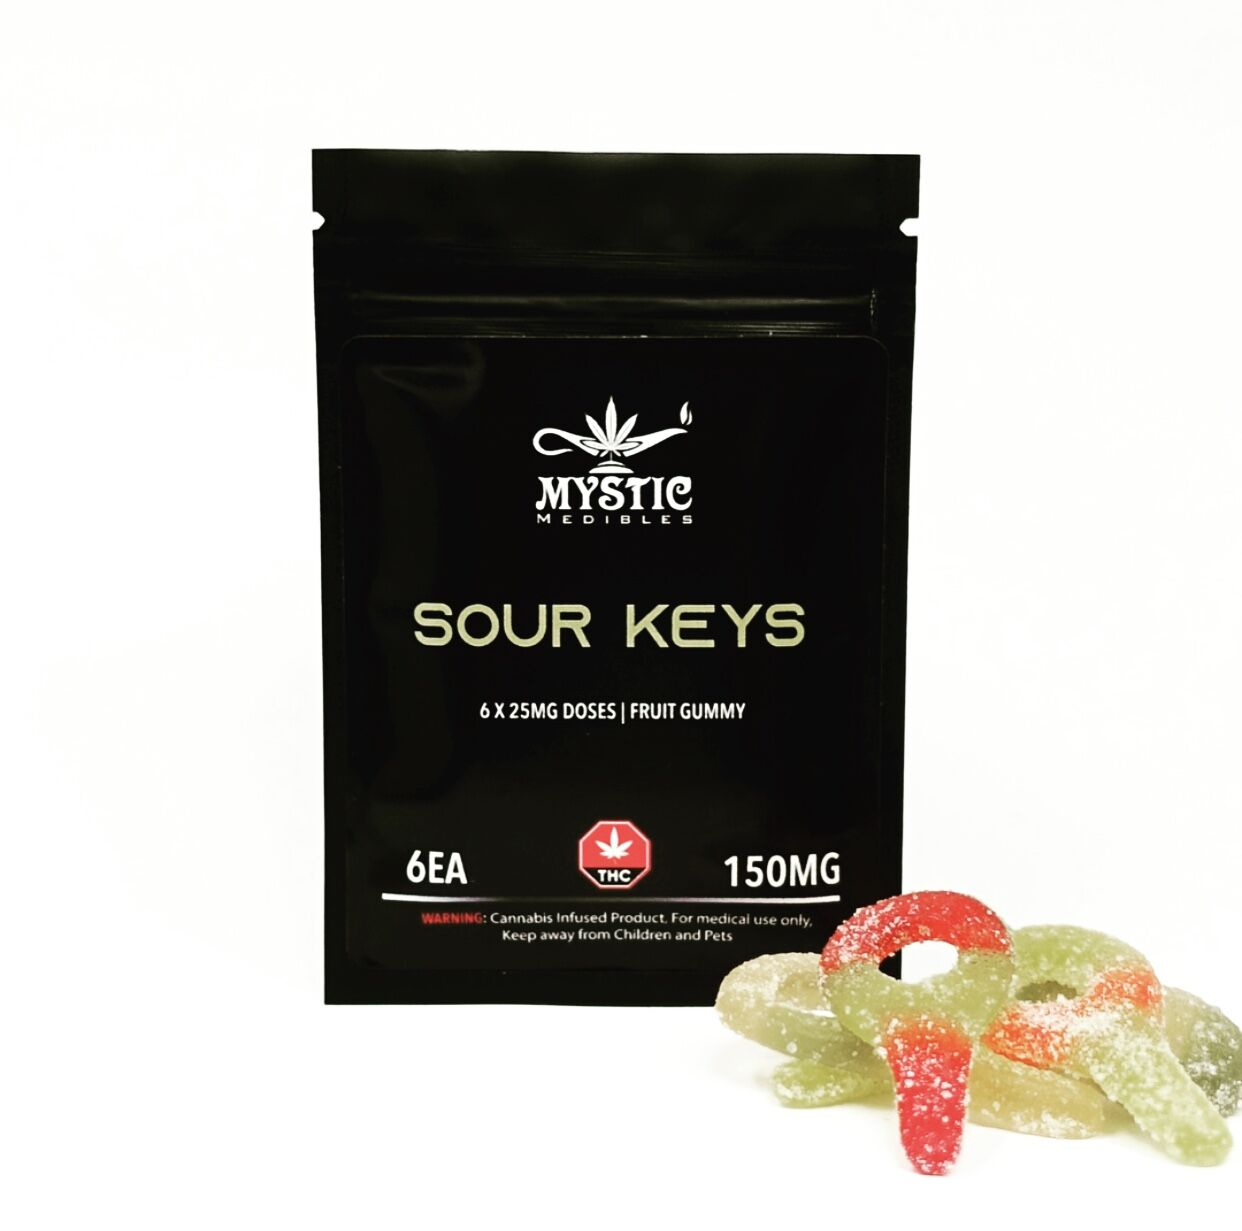 Sour Keys by Mystic Medibles (150mg THC)